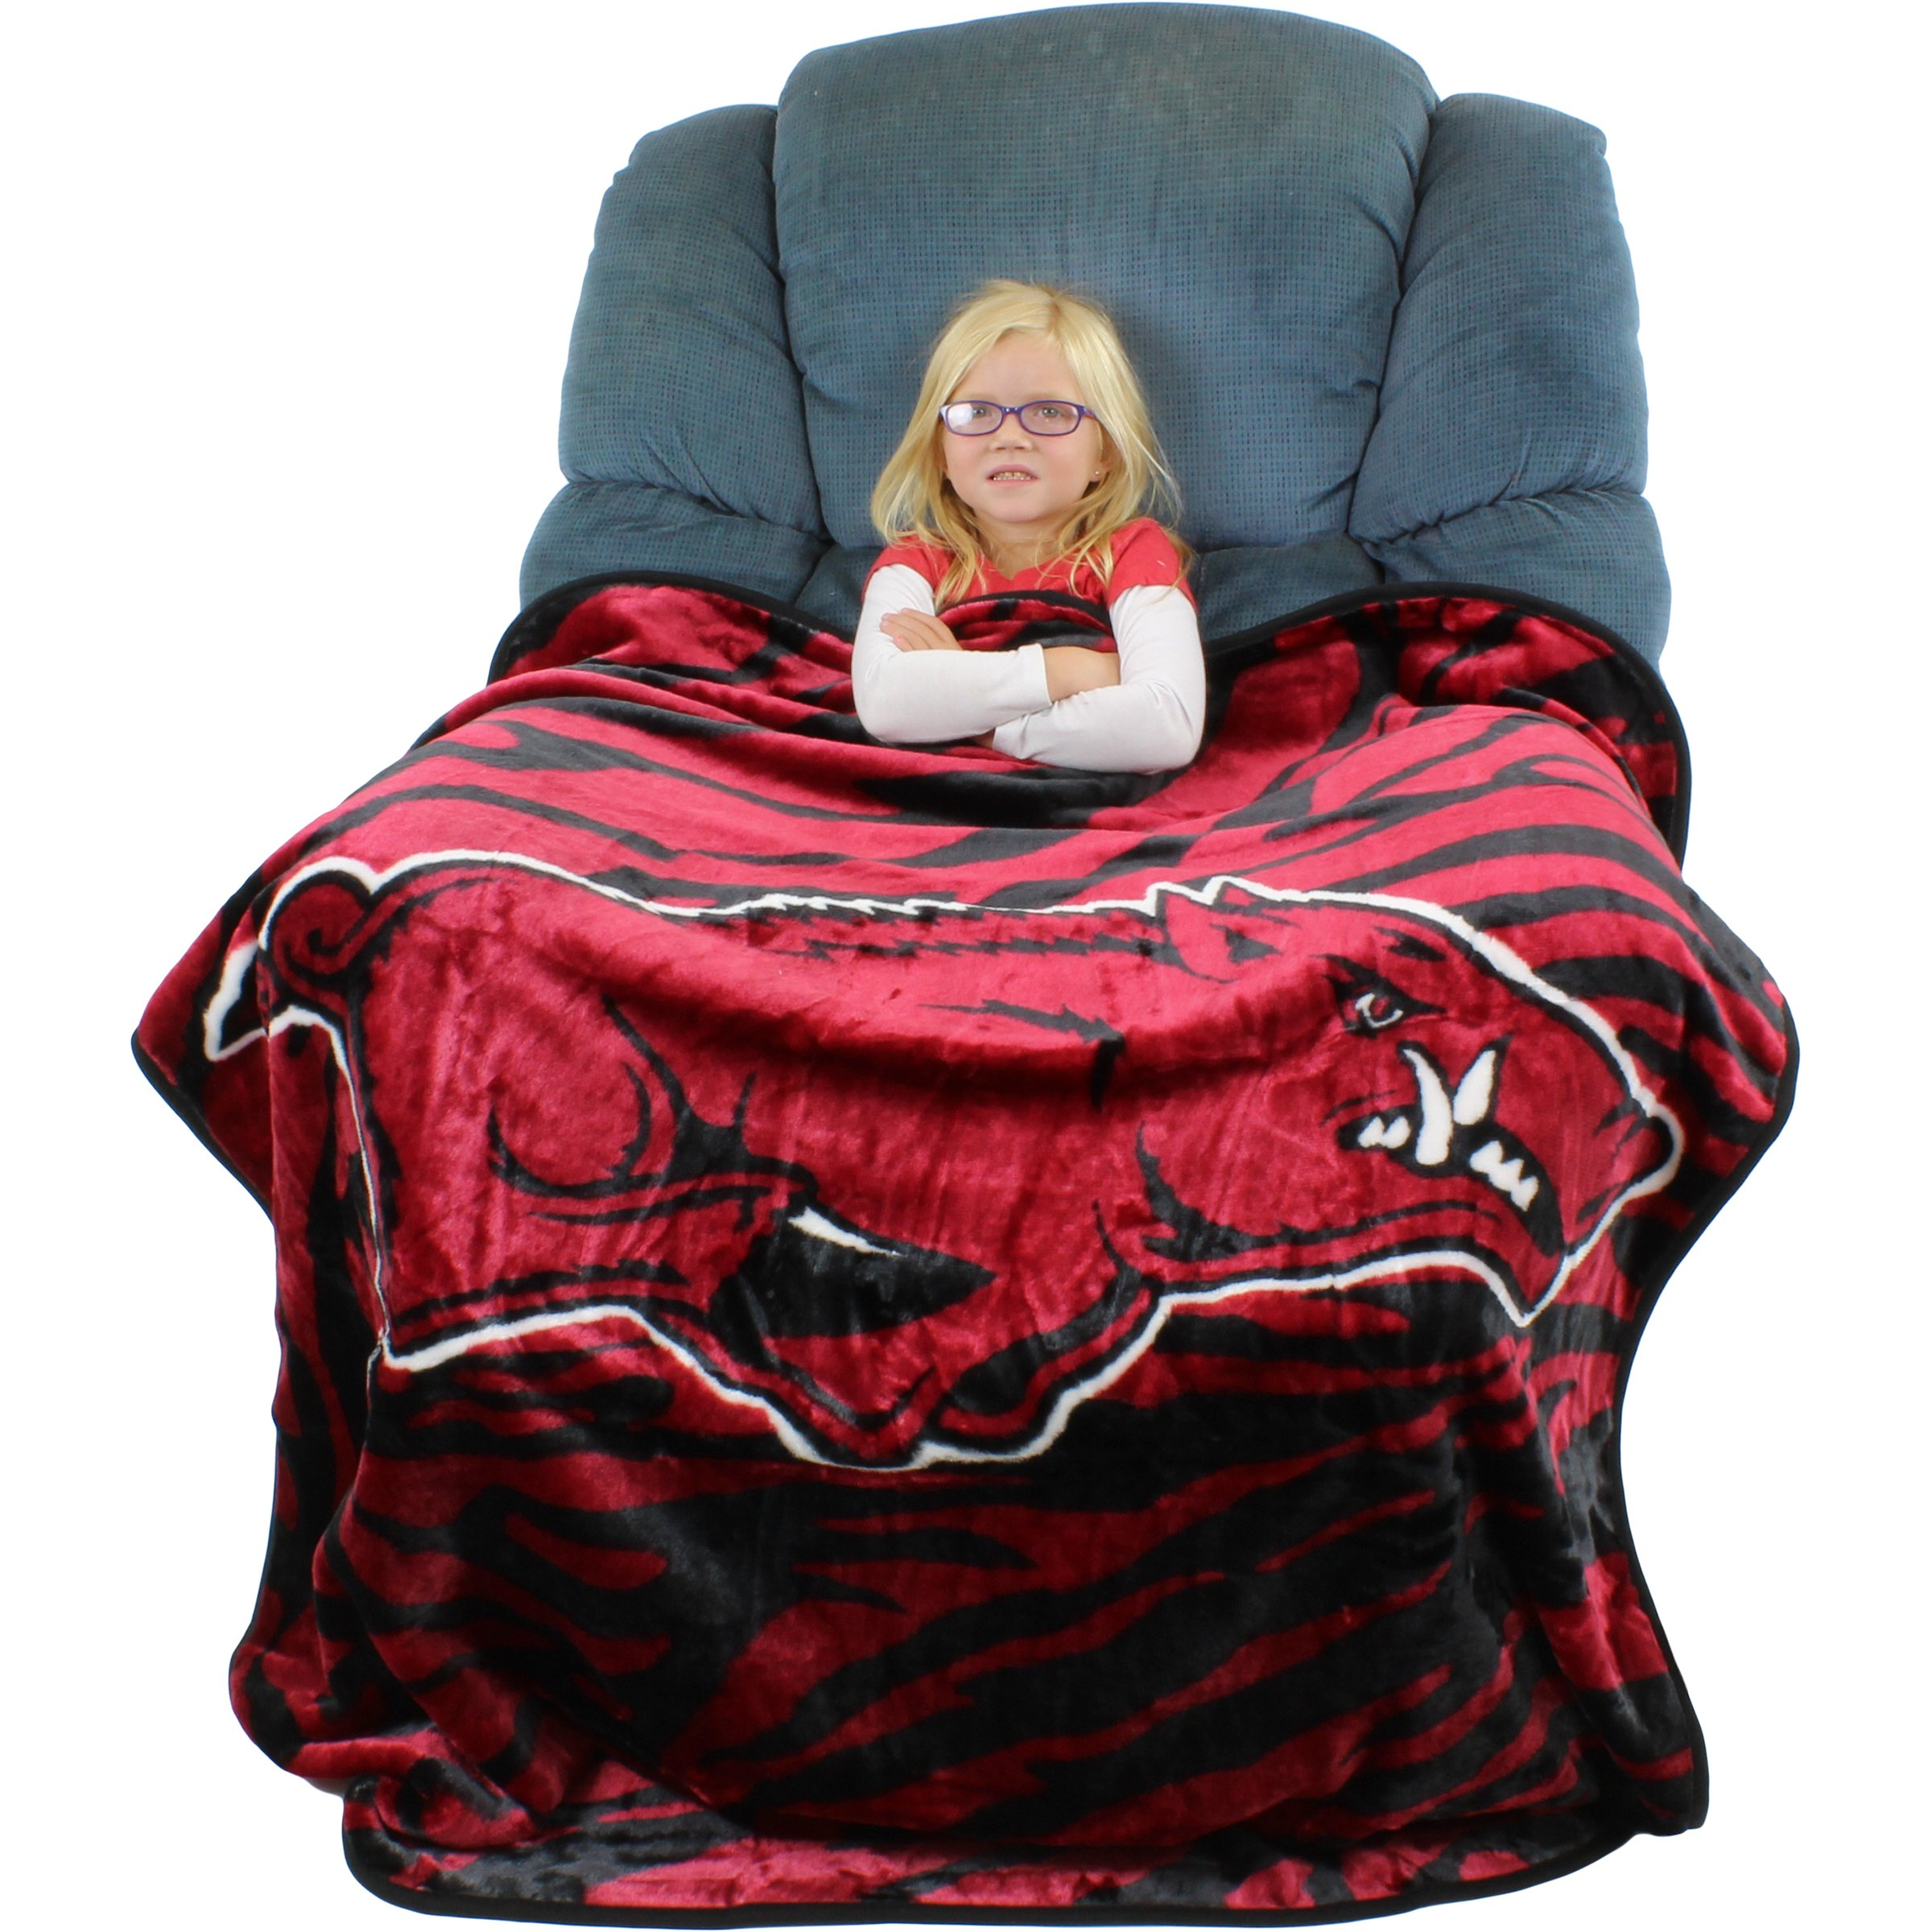 College Covers Raschel Throw Blanket, 50'' x 60'', Arkansas Razorbacks by College Covers